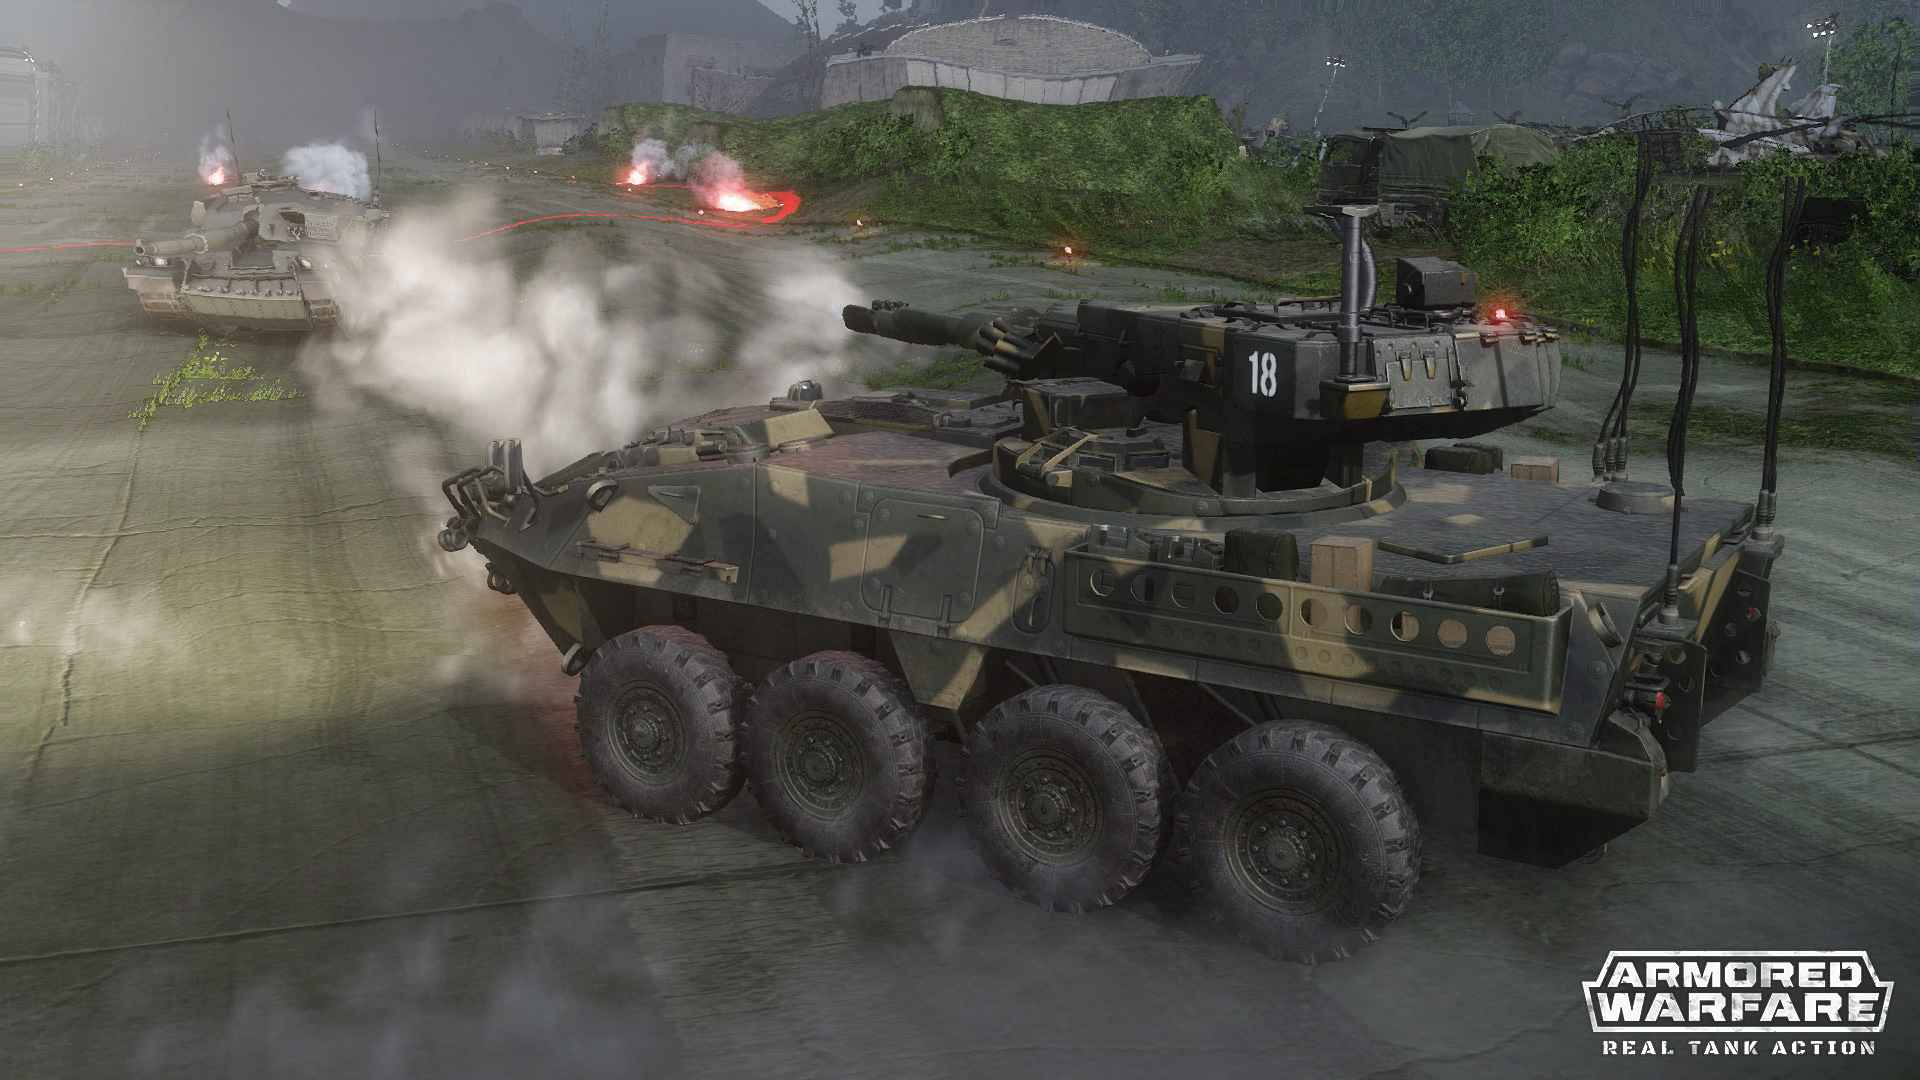 Armored Warfare Update Brings Caribbean Crisis To PS4 MMO